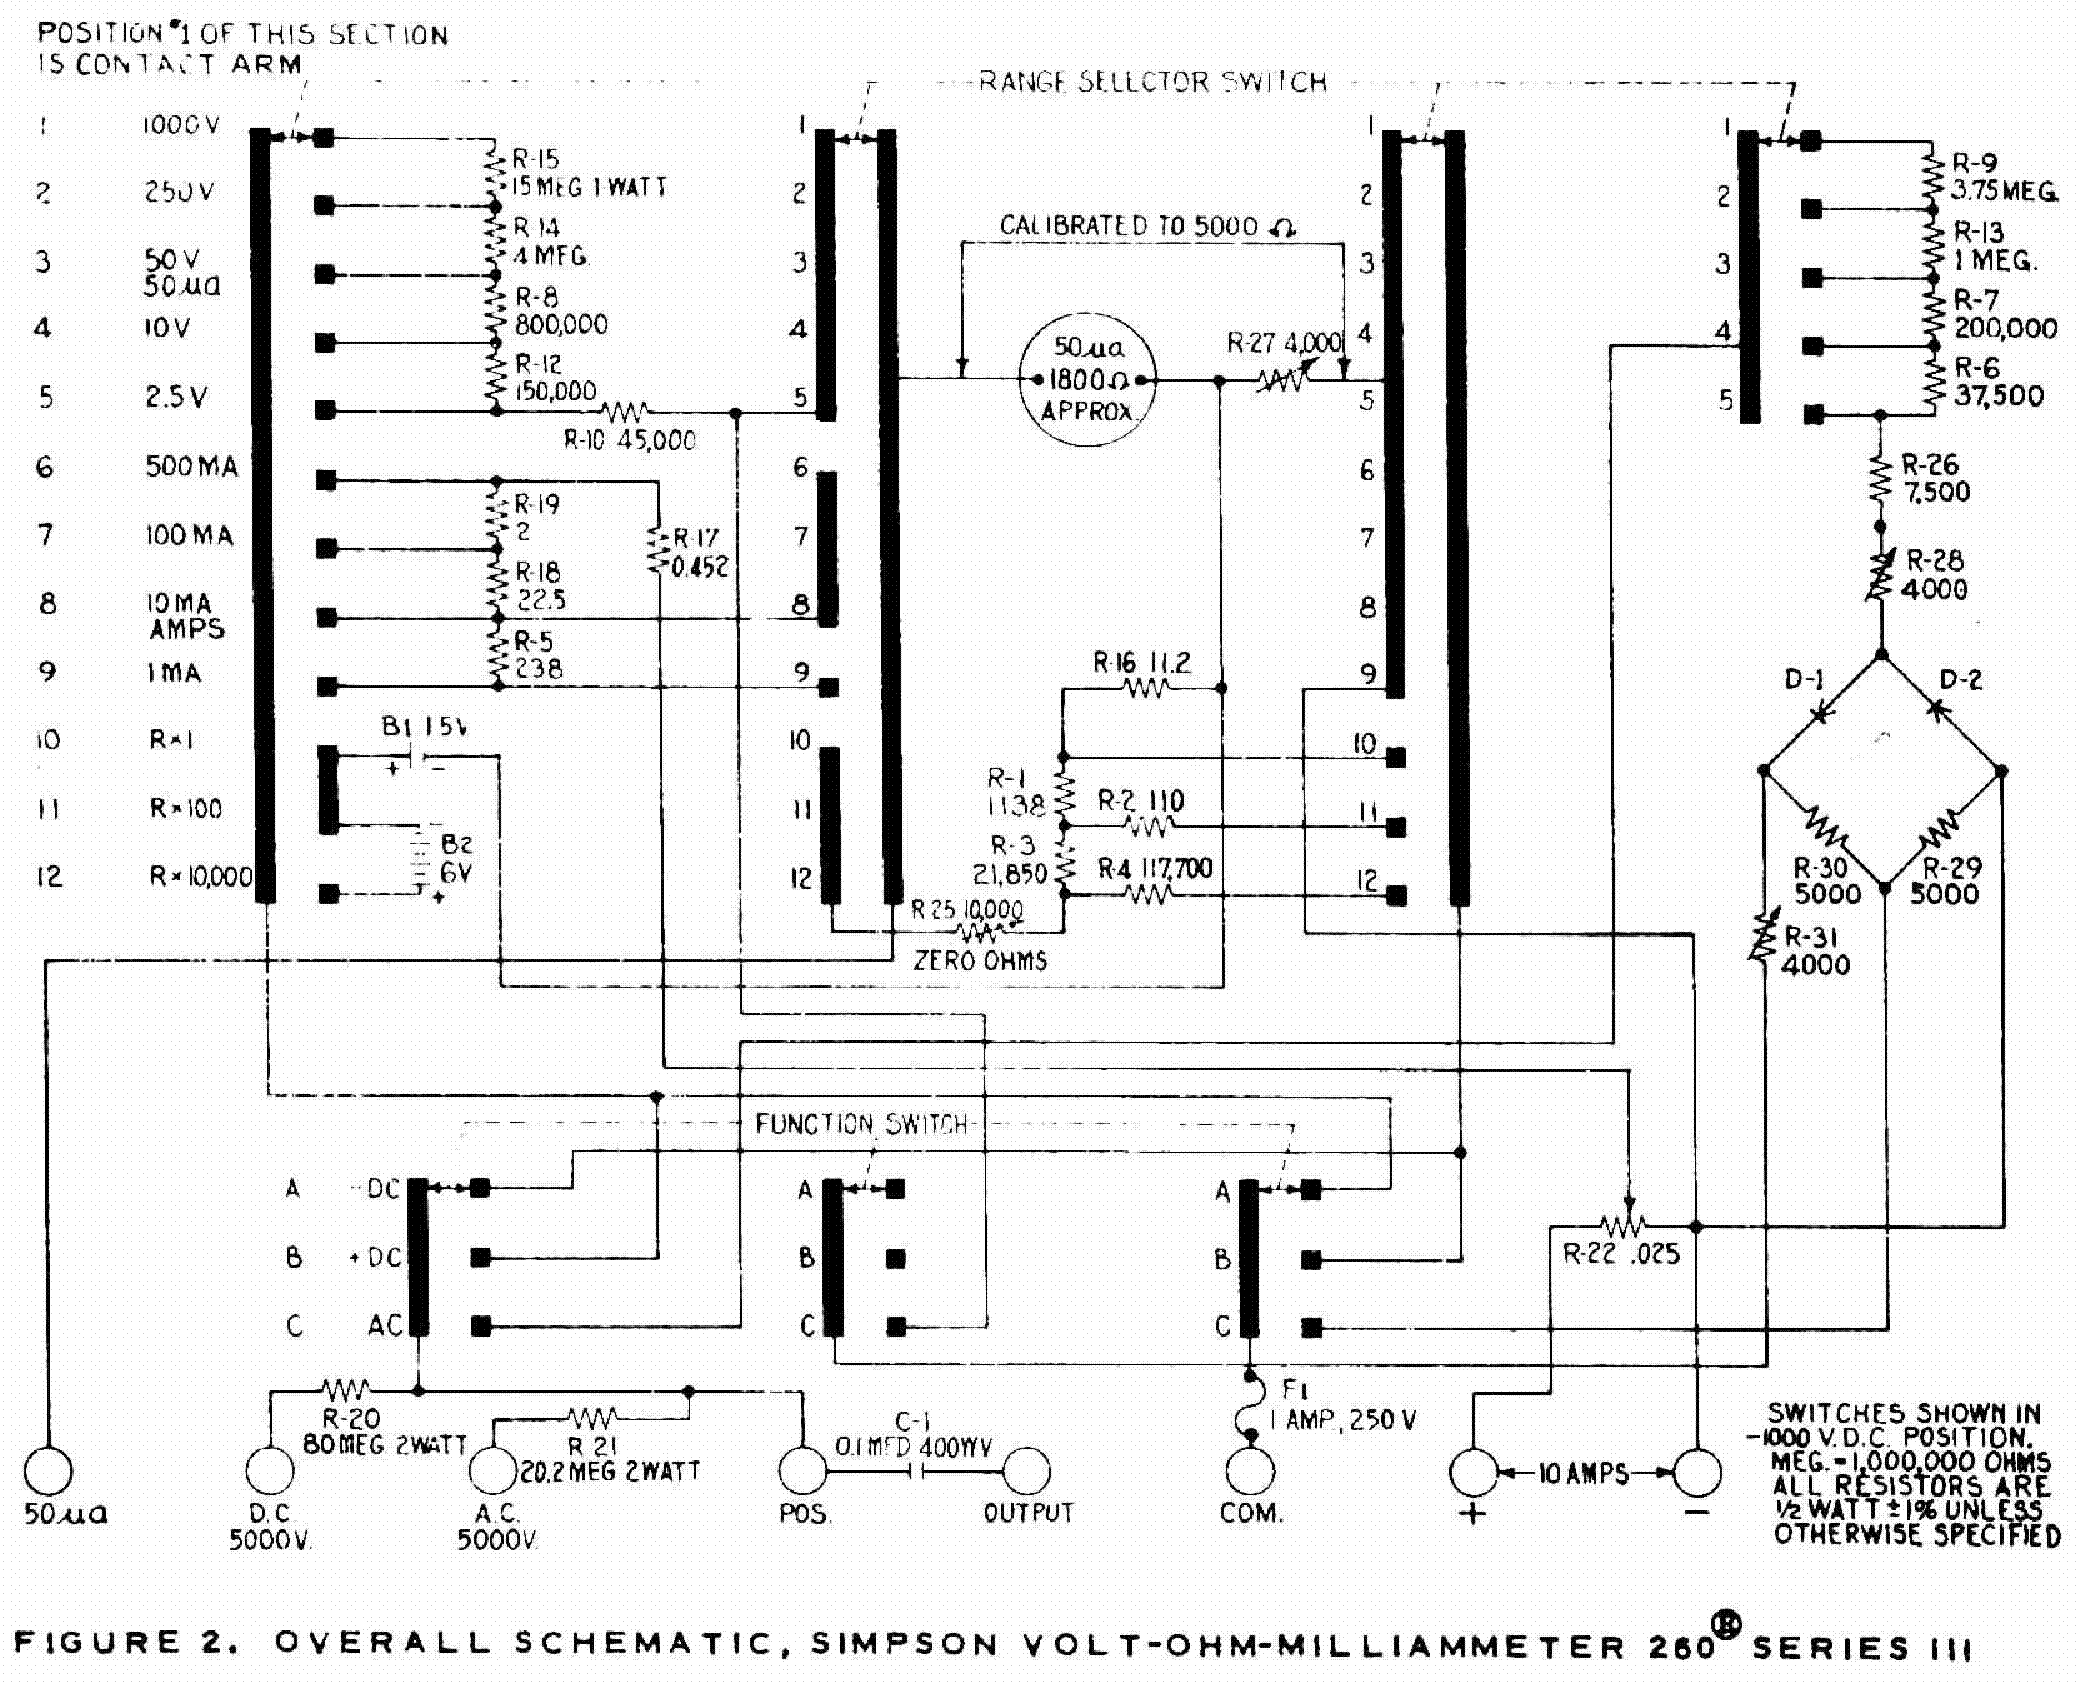 Simpson 260 Schematic Diagram likewise Simpson 260 Multimeter Schematic further NEETS Module 16 4 1 4 10 further Simpson 260 Multimeter Schematic further Simpson Analog Multimeter. on simpson 260 ohm meter schematic